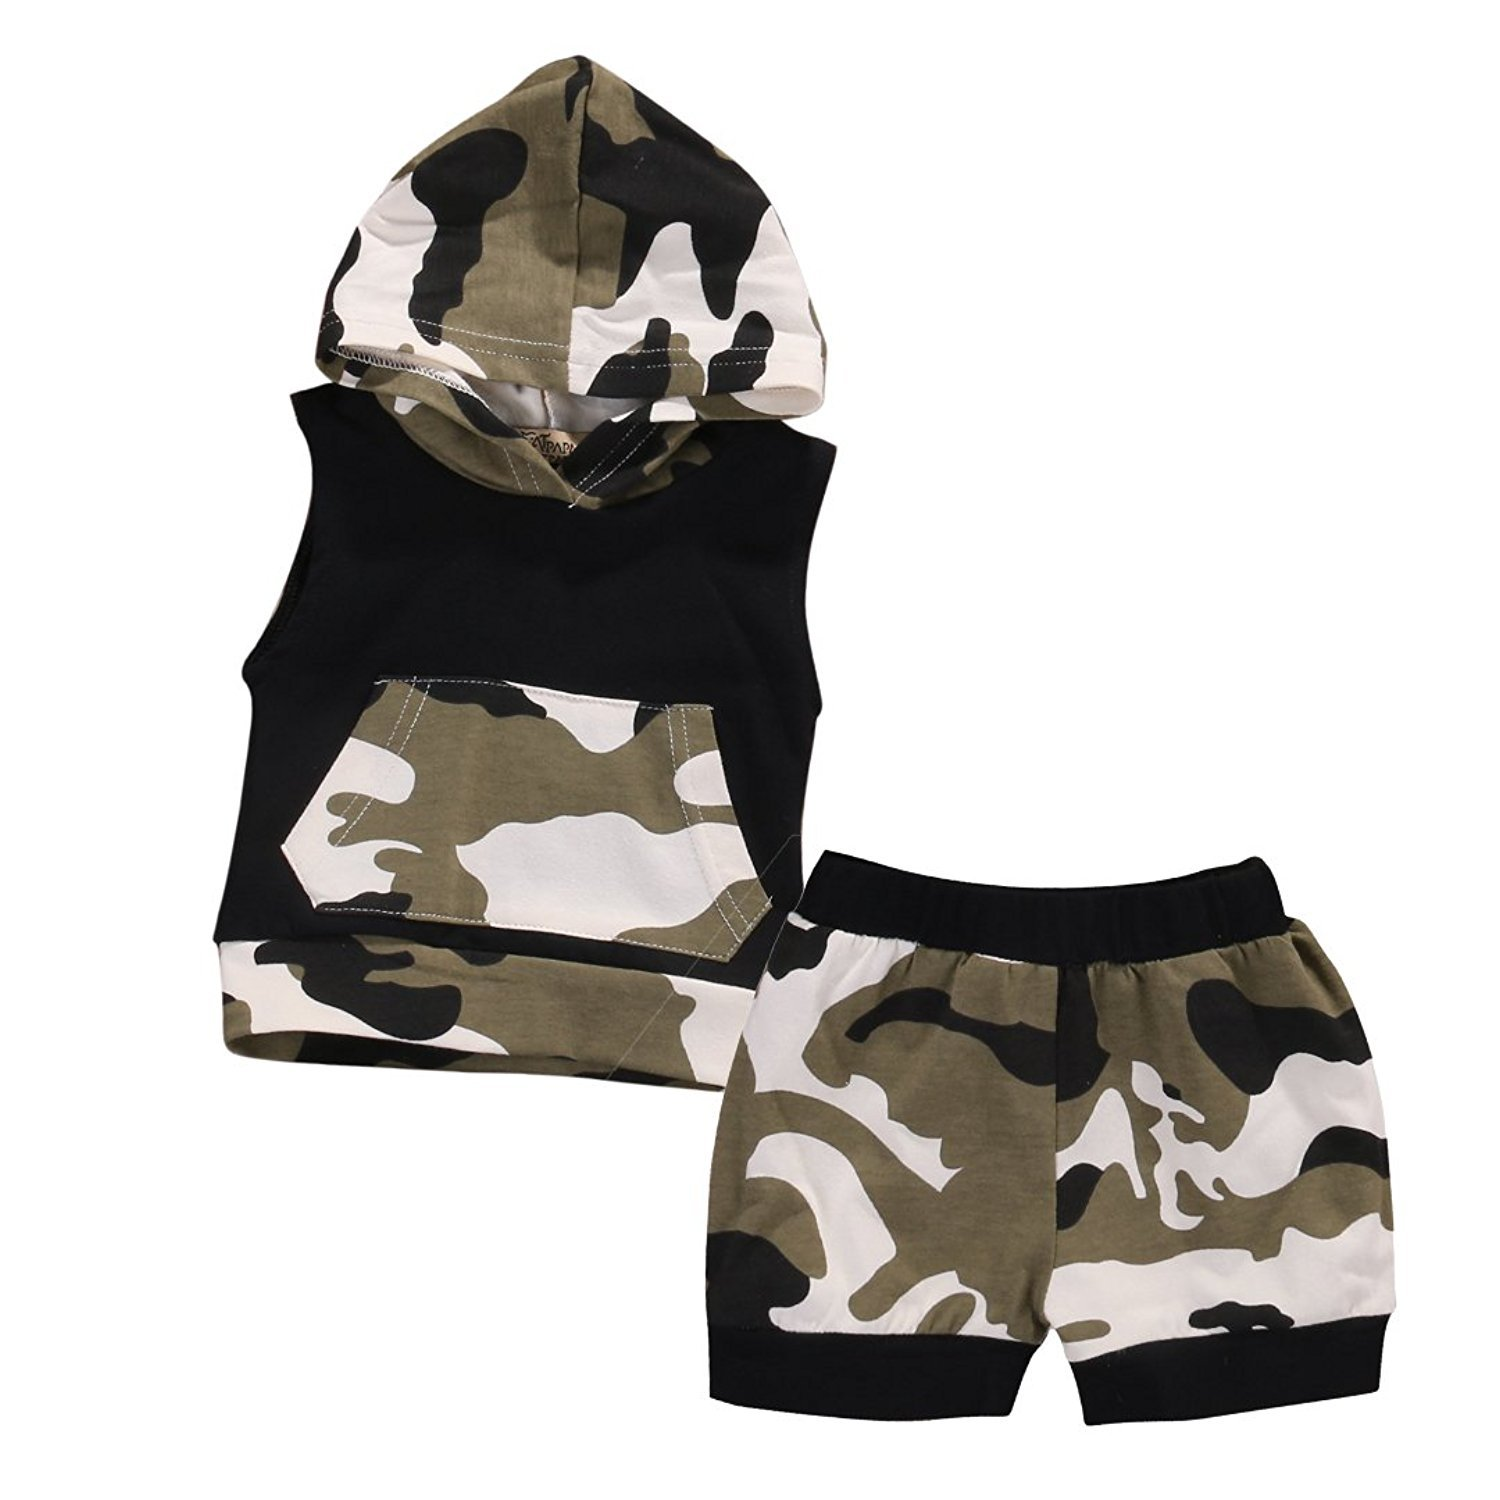 Infant Baby Boys Camouflage Hoodie Tops +Long Pants Outfits Set Clothes 0-3Y Slinkaslp